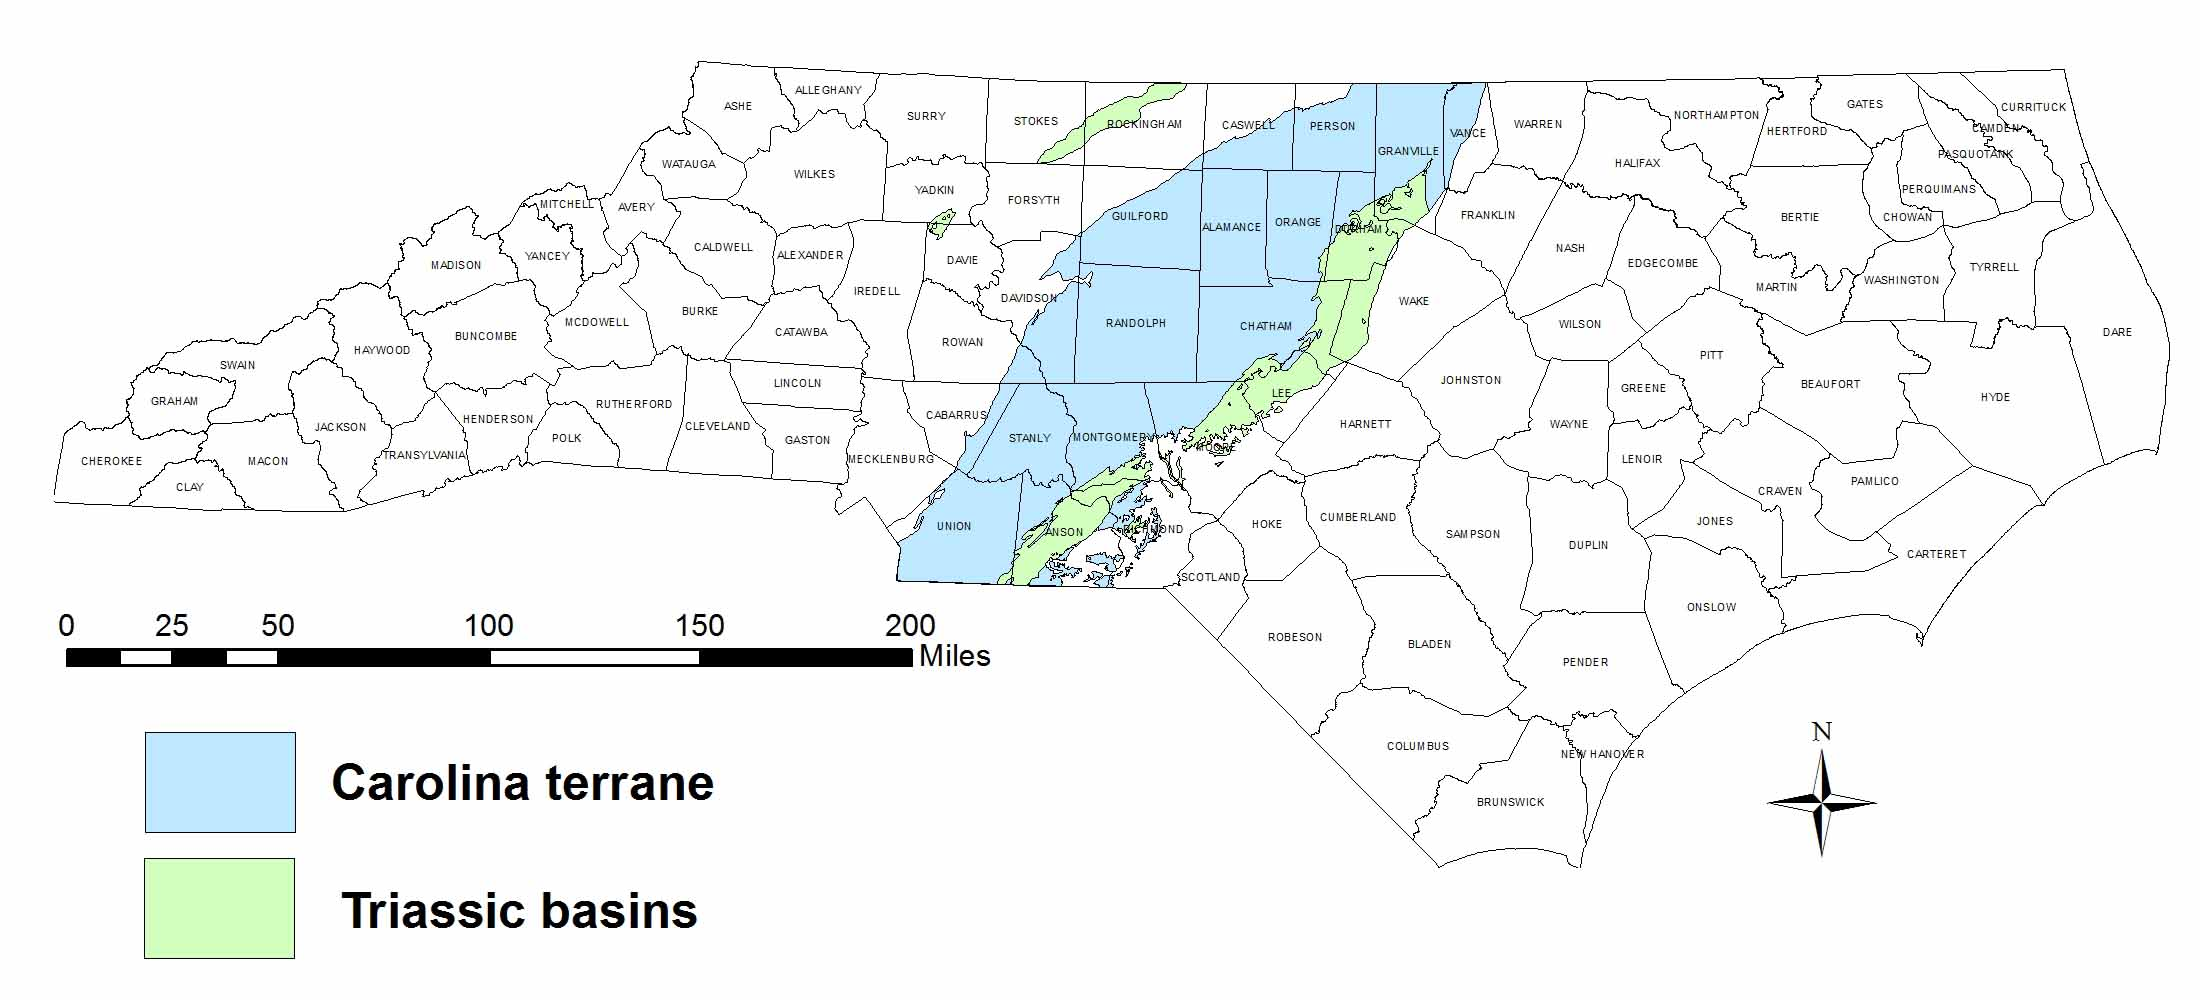 Triassic basin and Carolina terrane extents in NC